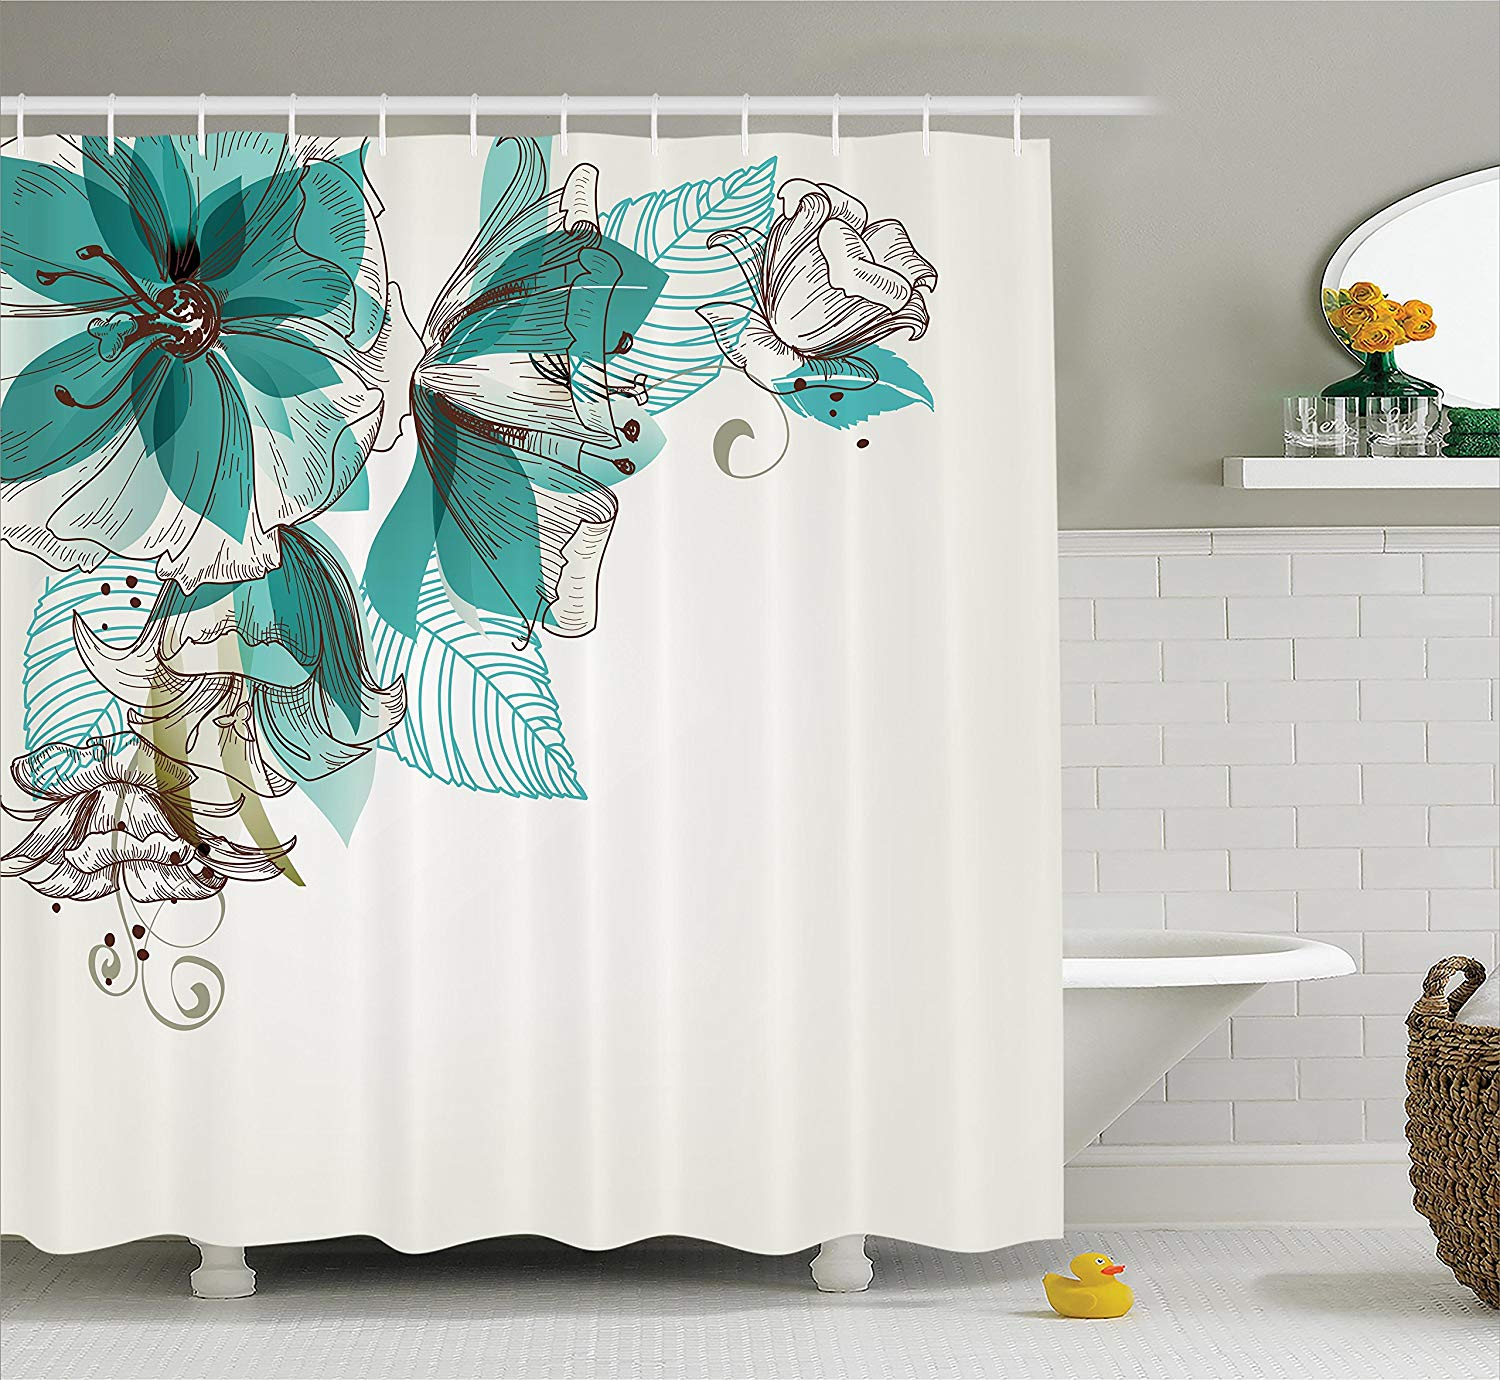 Turquoise Shower Curtain Decor Flowers Buds Leaf At The Top Retro Art Polyester Fabric Bathroom Shower Curtain Set With Hooks Shower Curtains Aliexpress